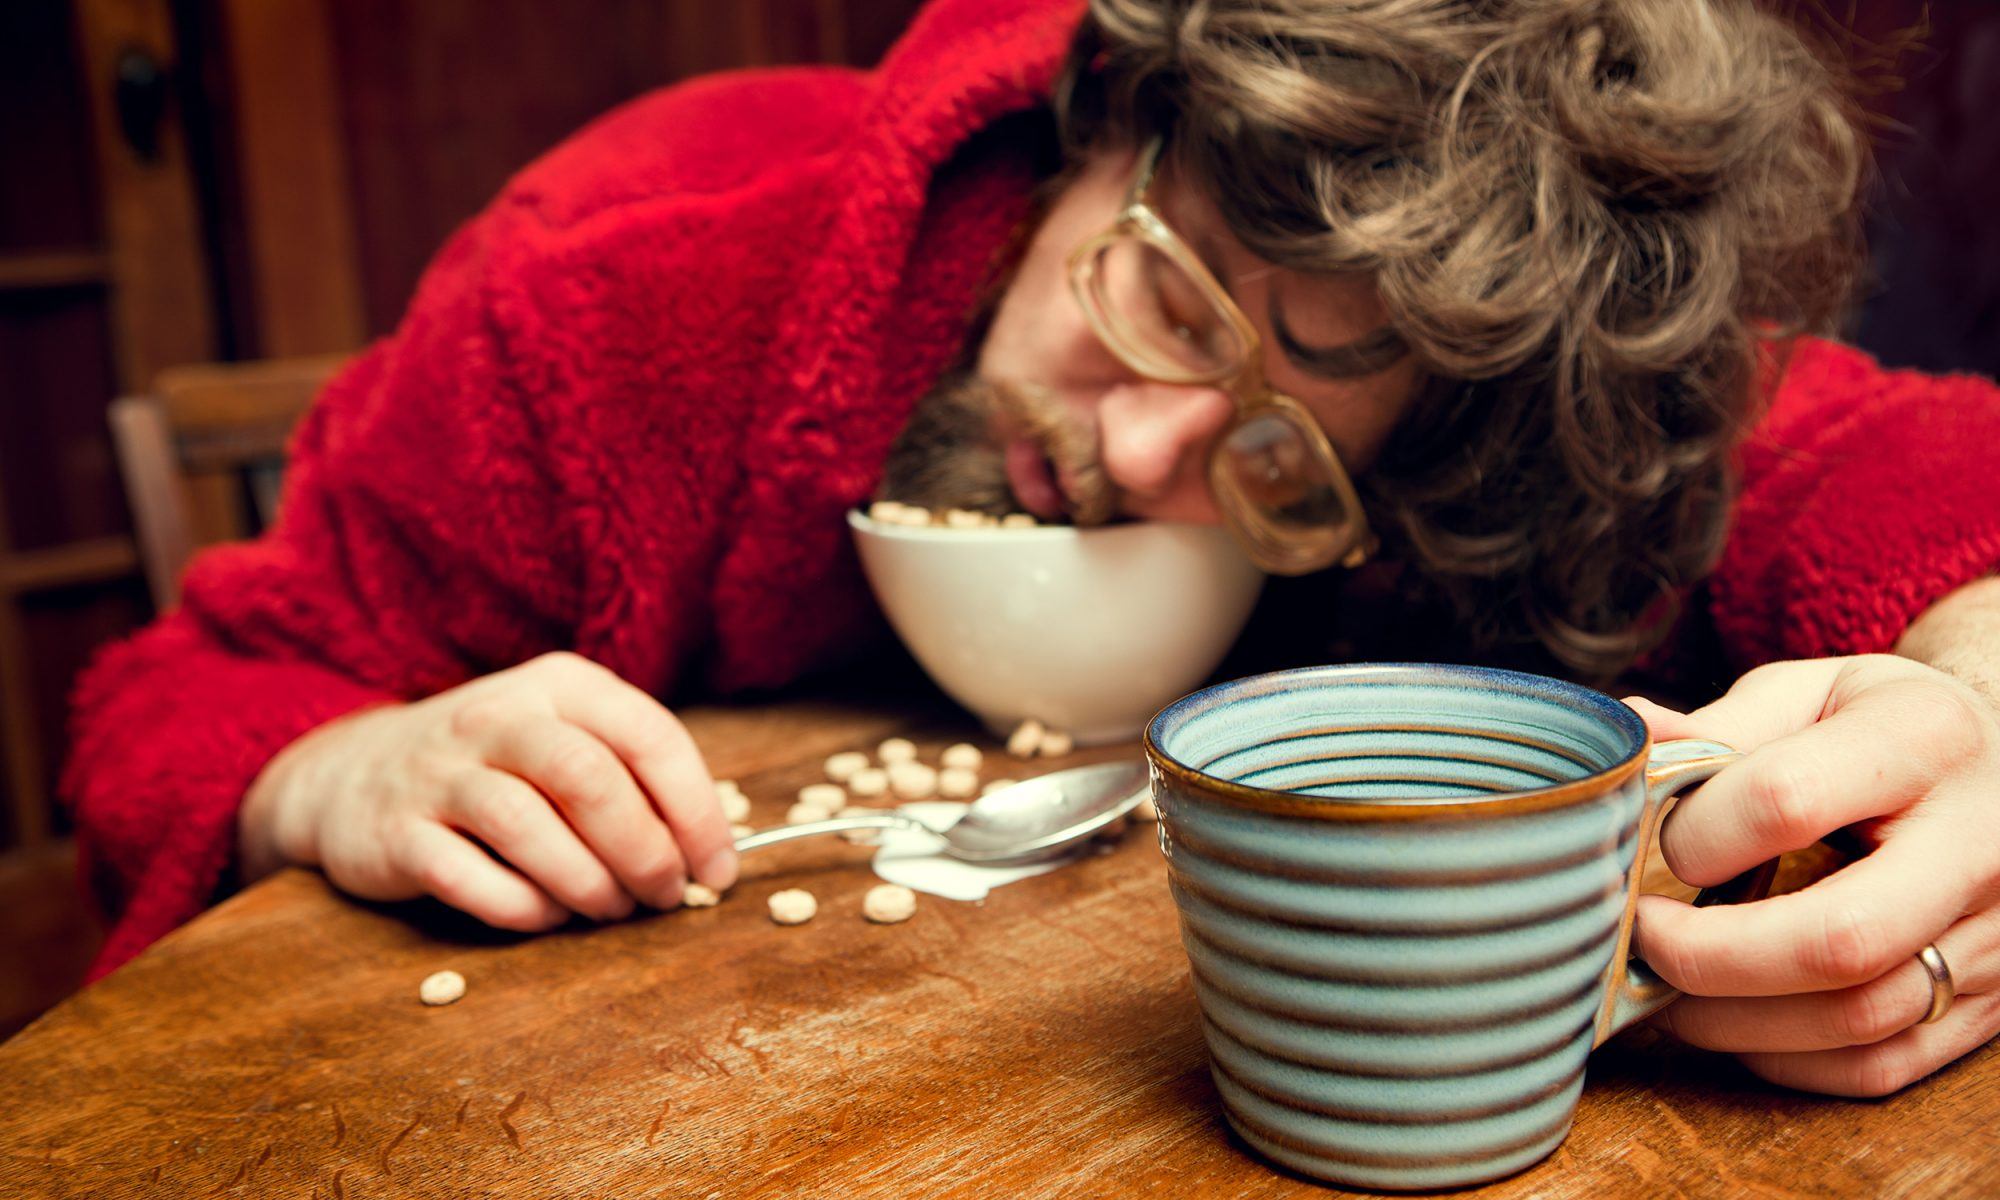 EC: People Who Sleep Less Eat More, Science Says